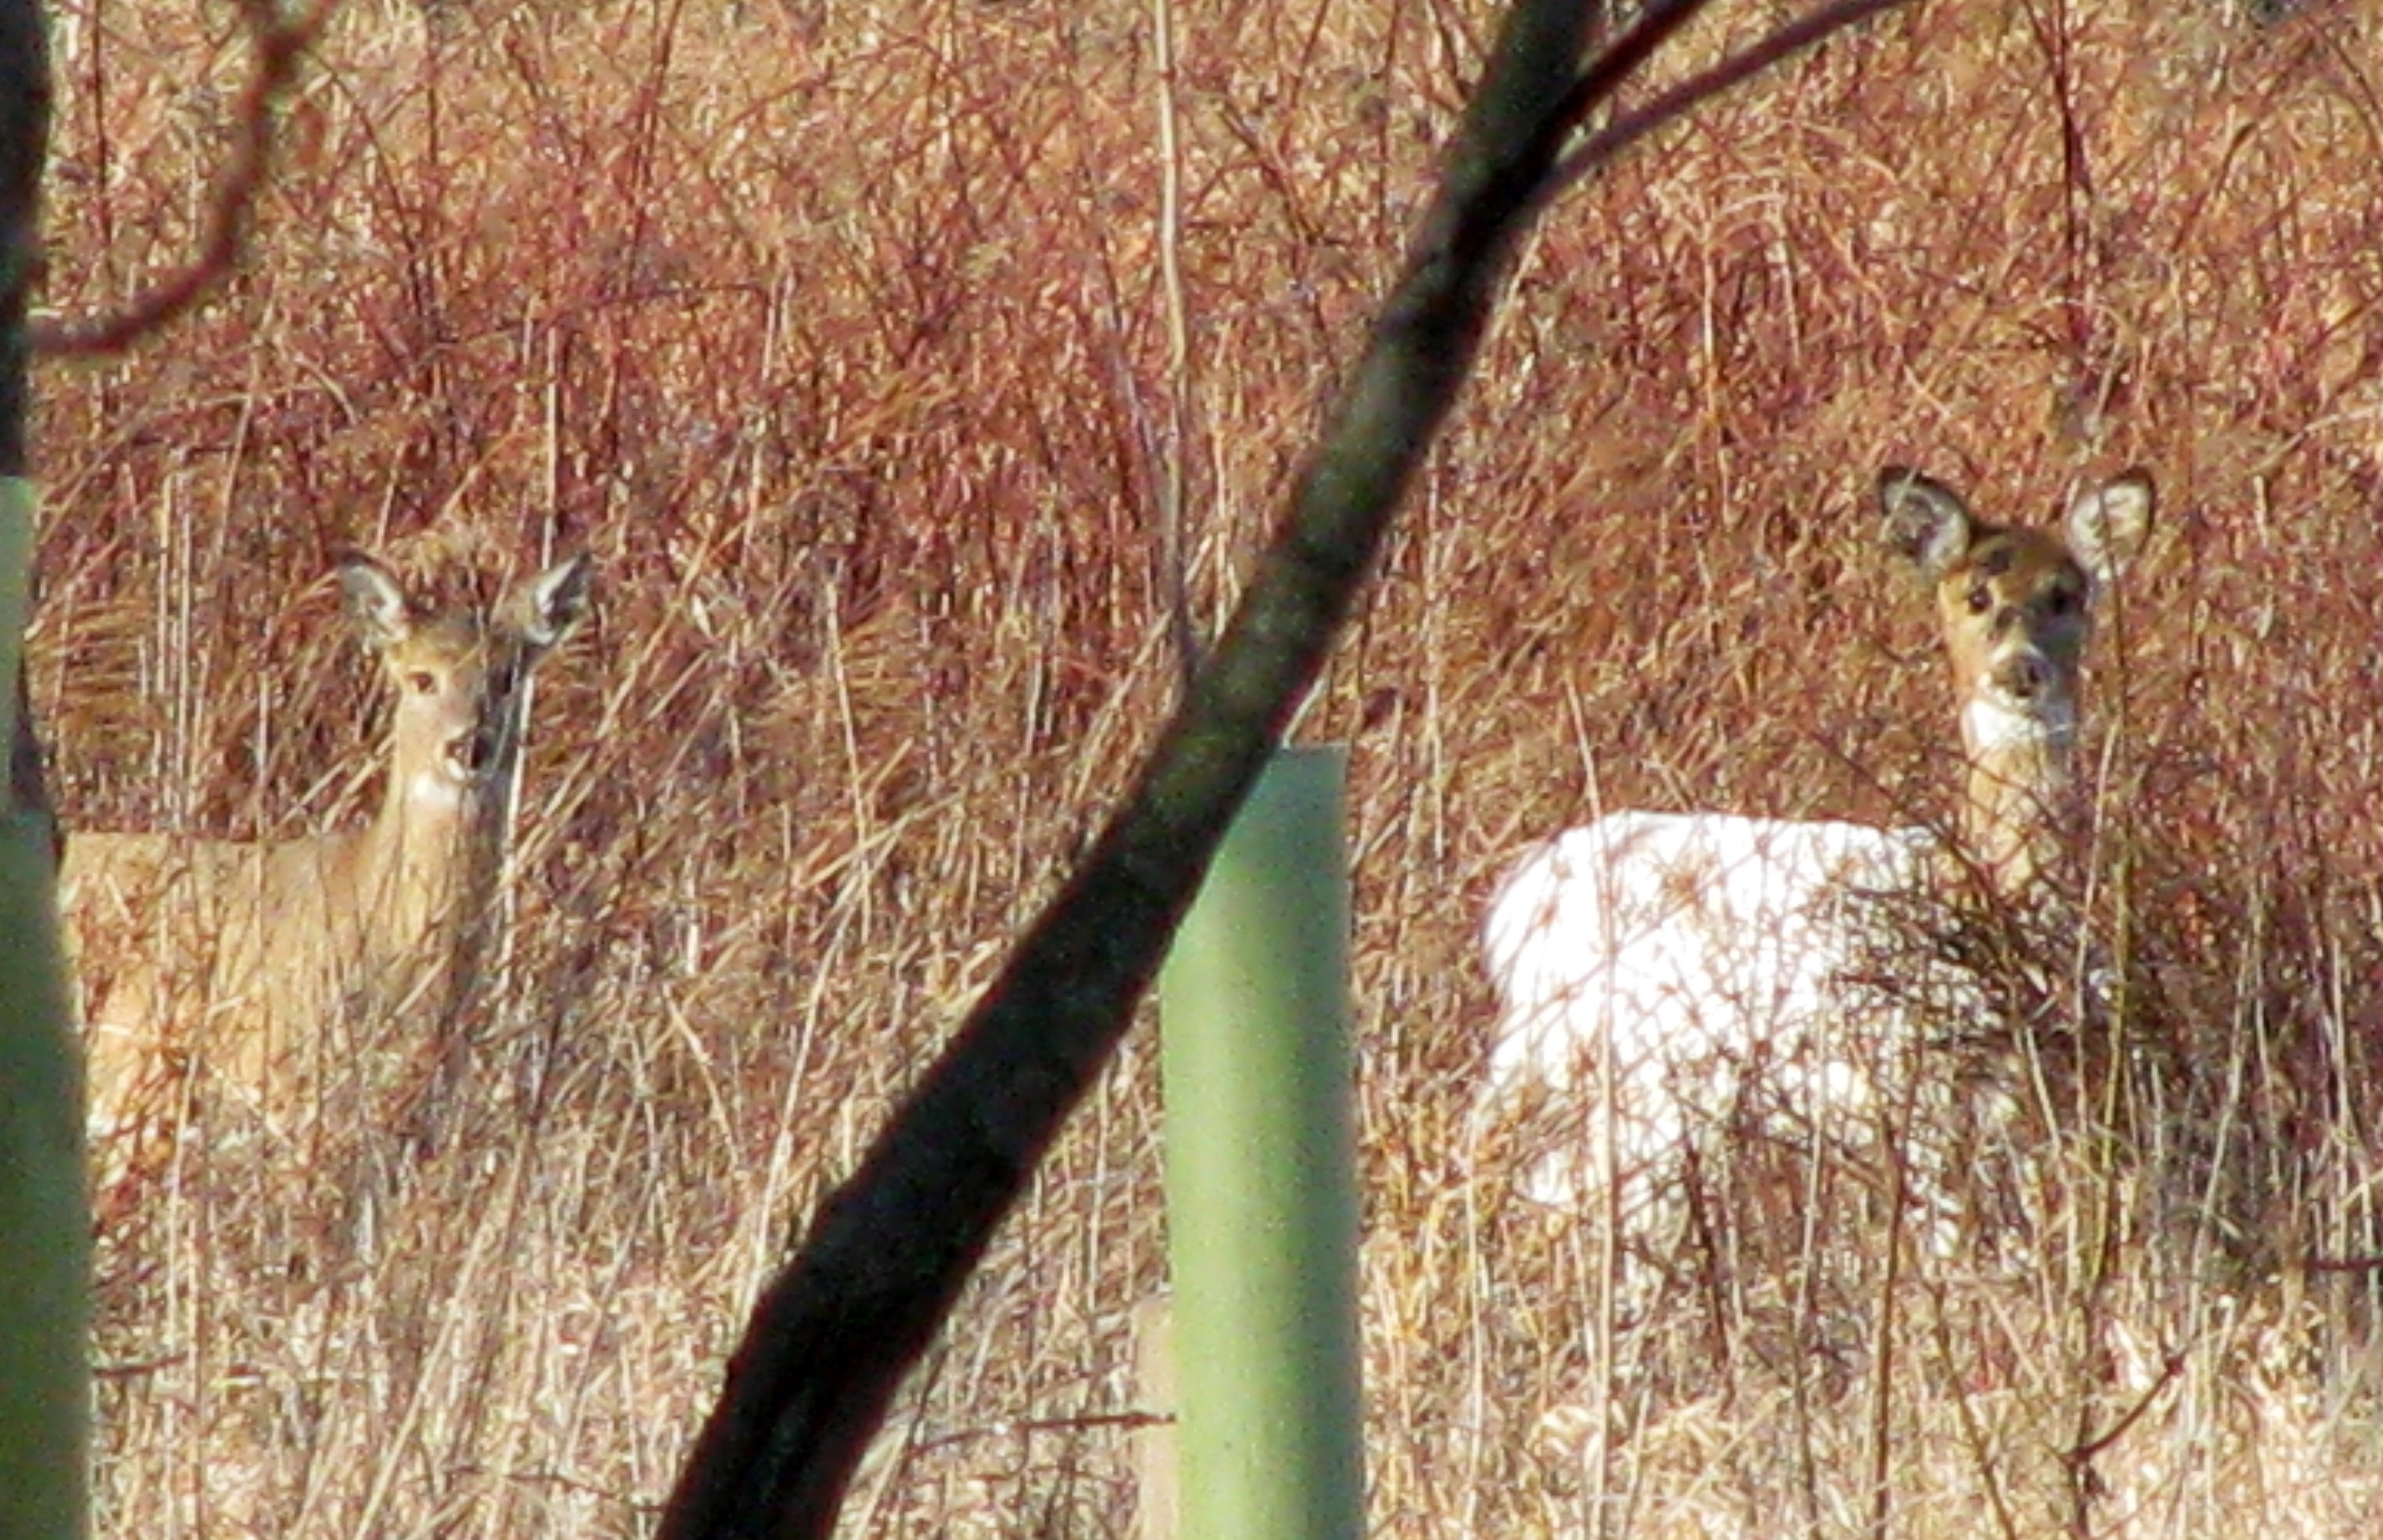 A piebald deer at Ashland, next to a normal-colored counterpart.